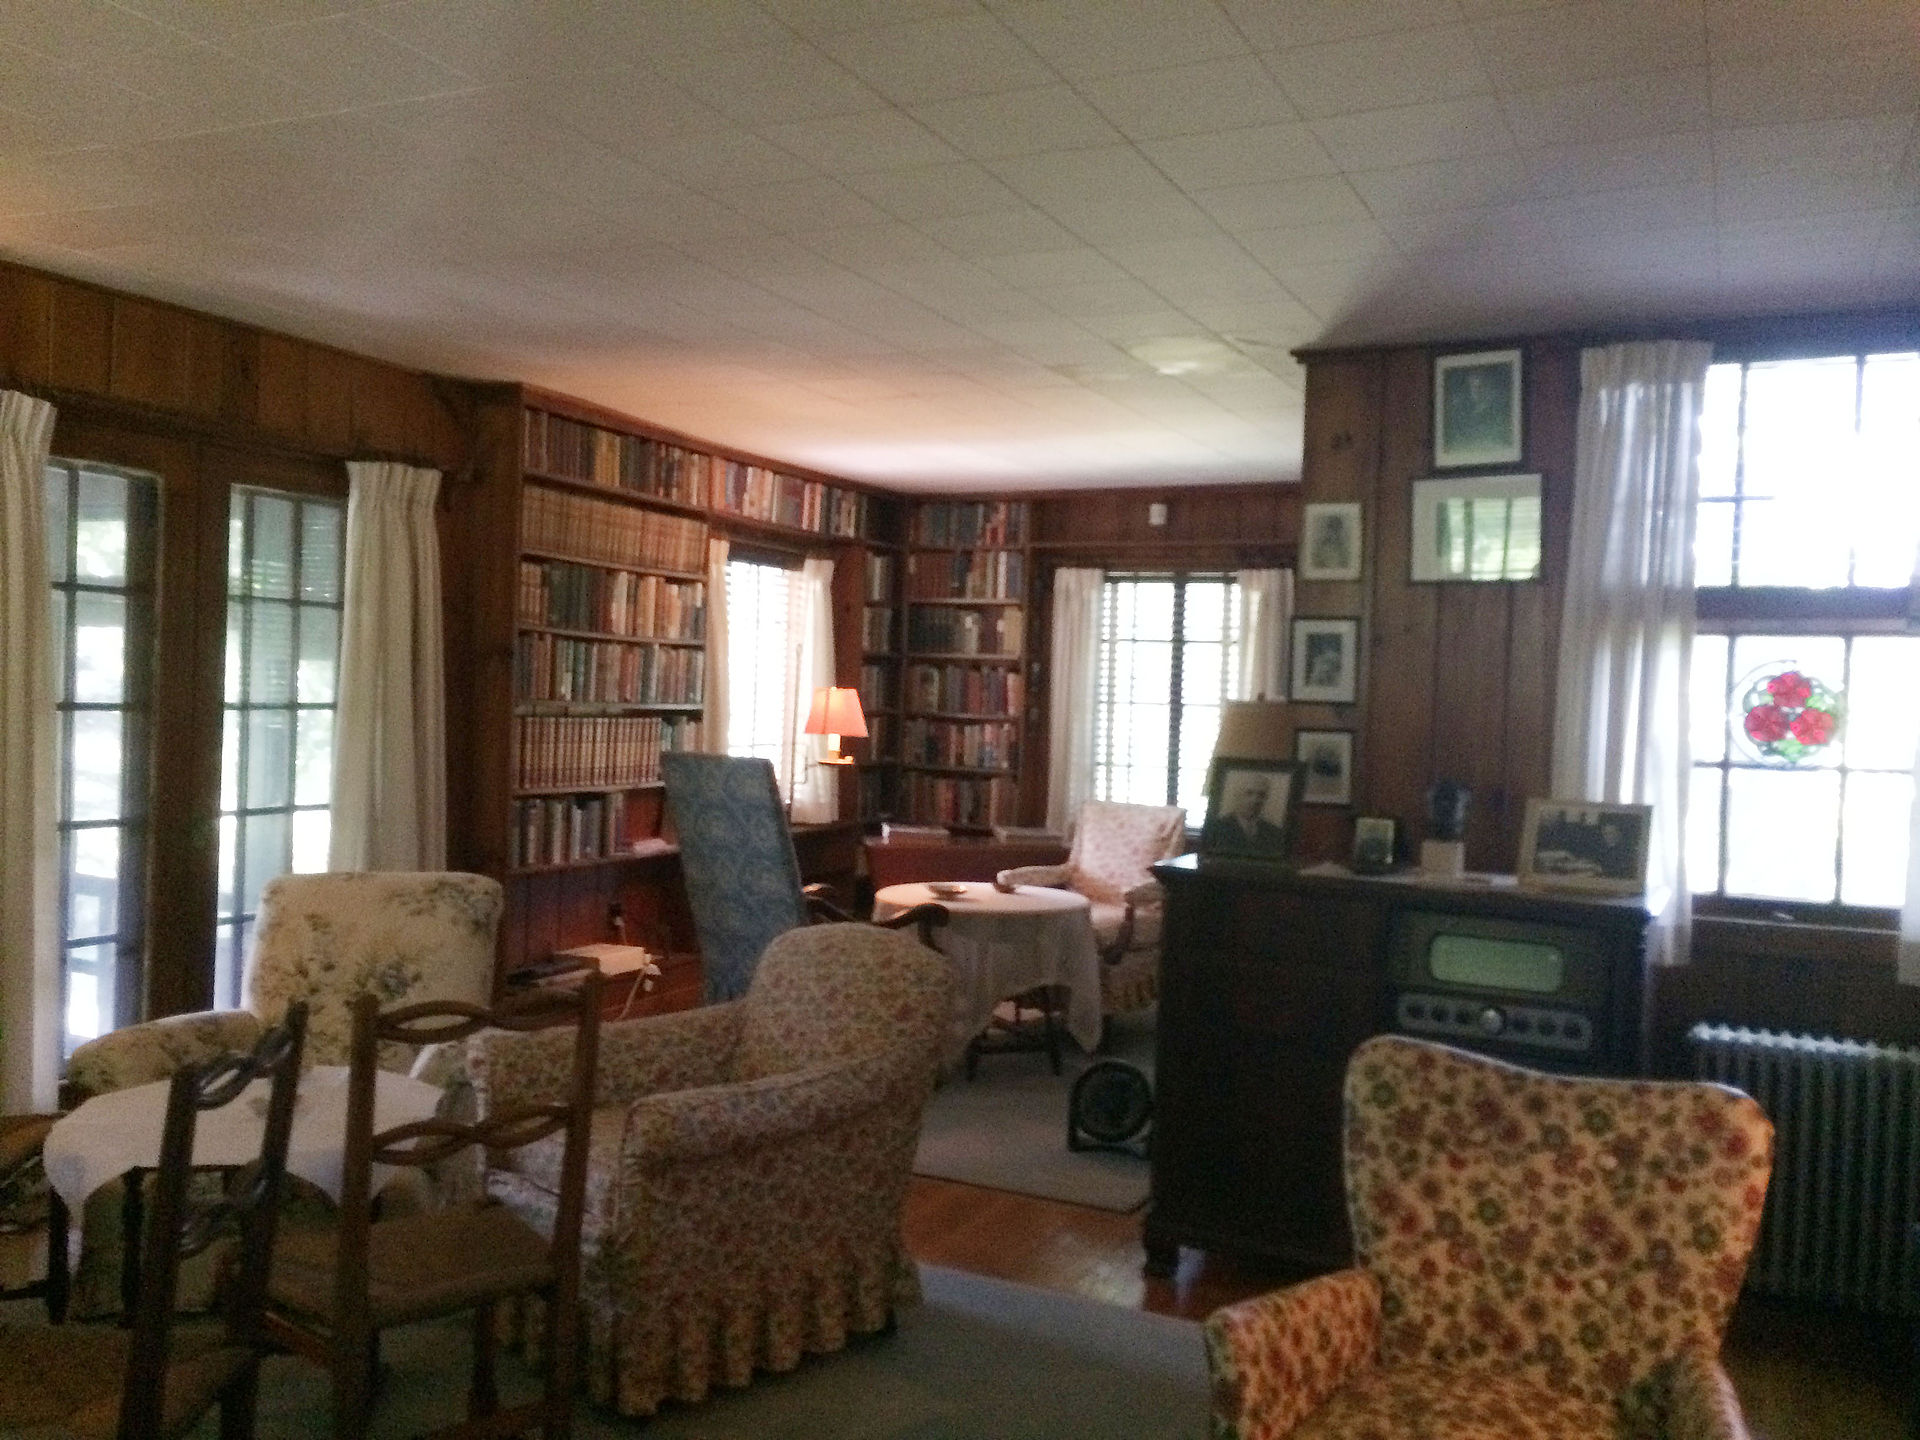 The living room in Val-Kill as seen by visitors today